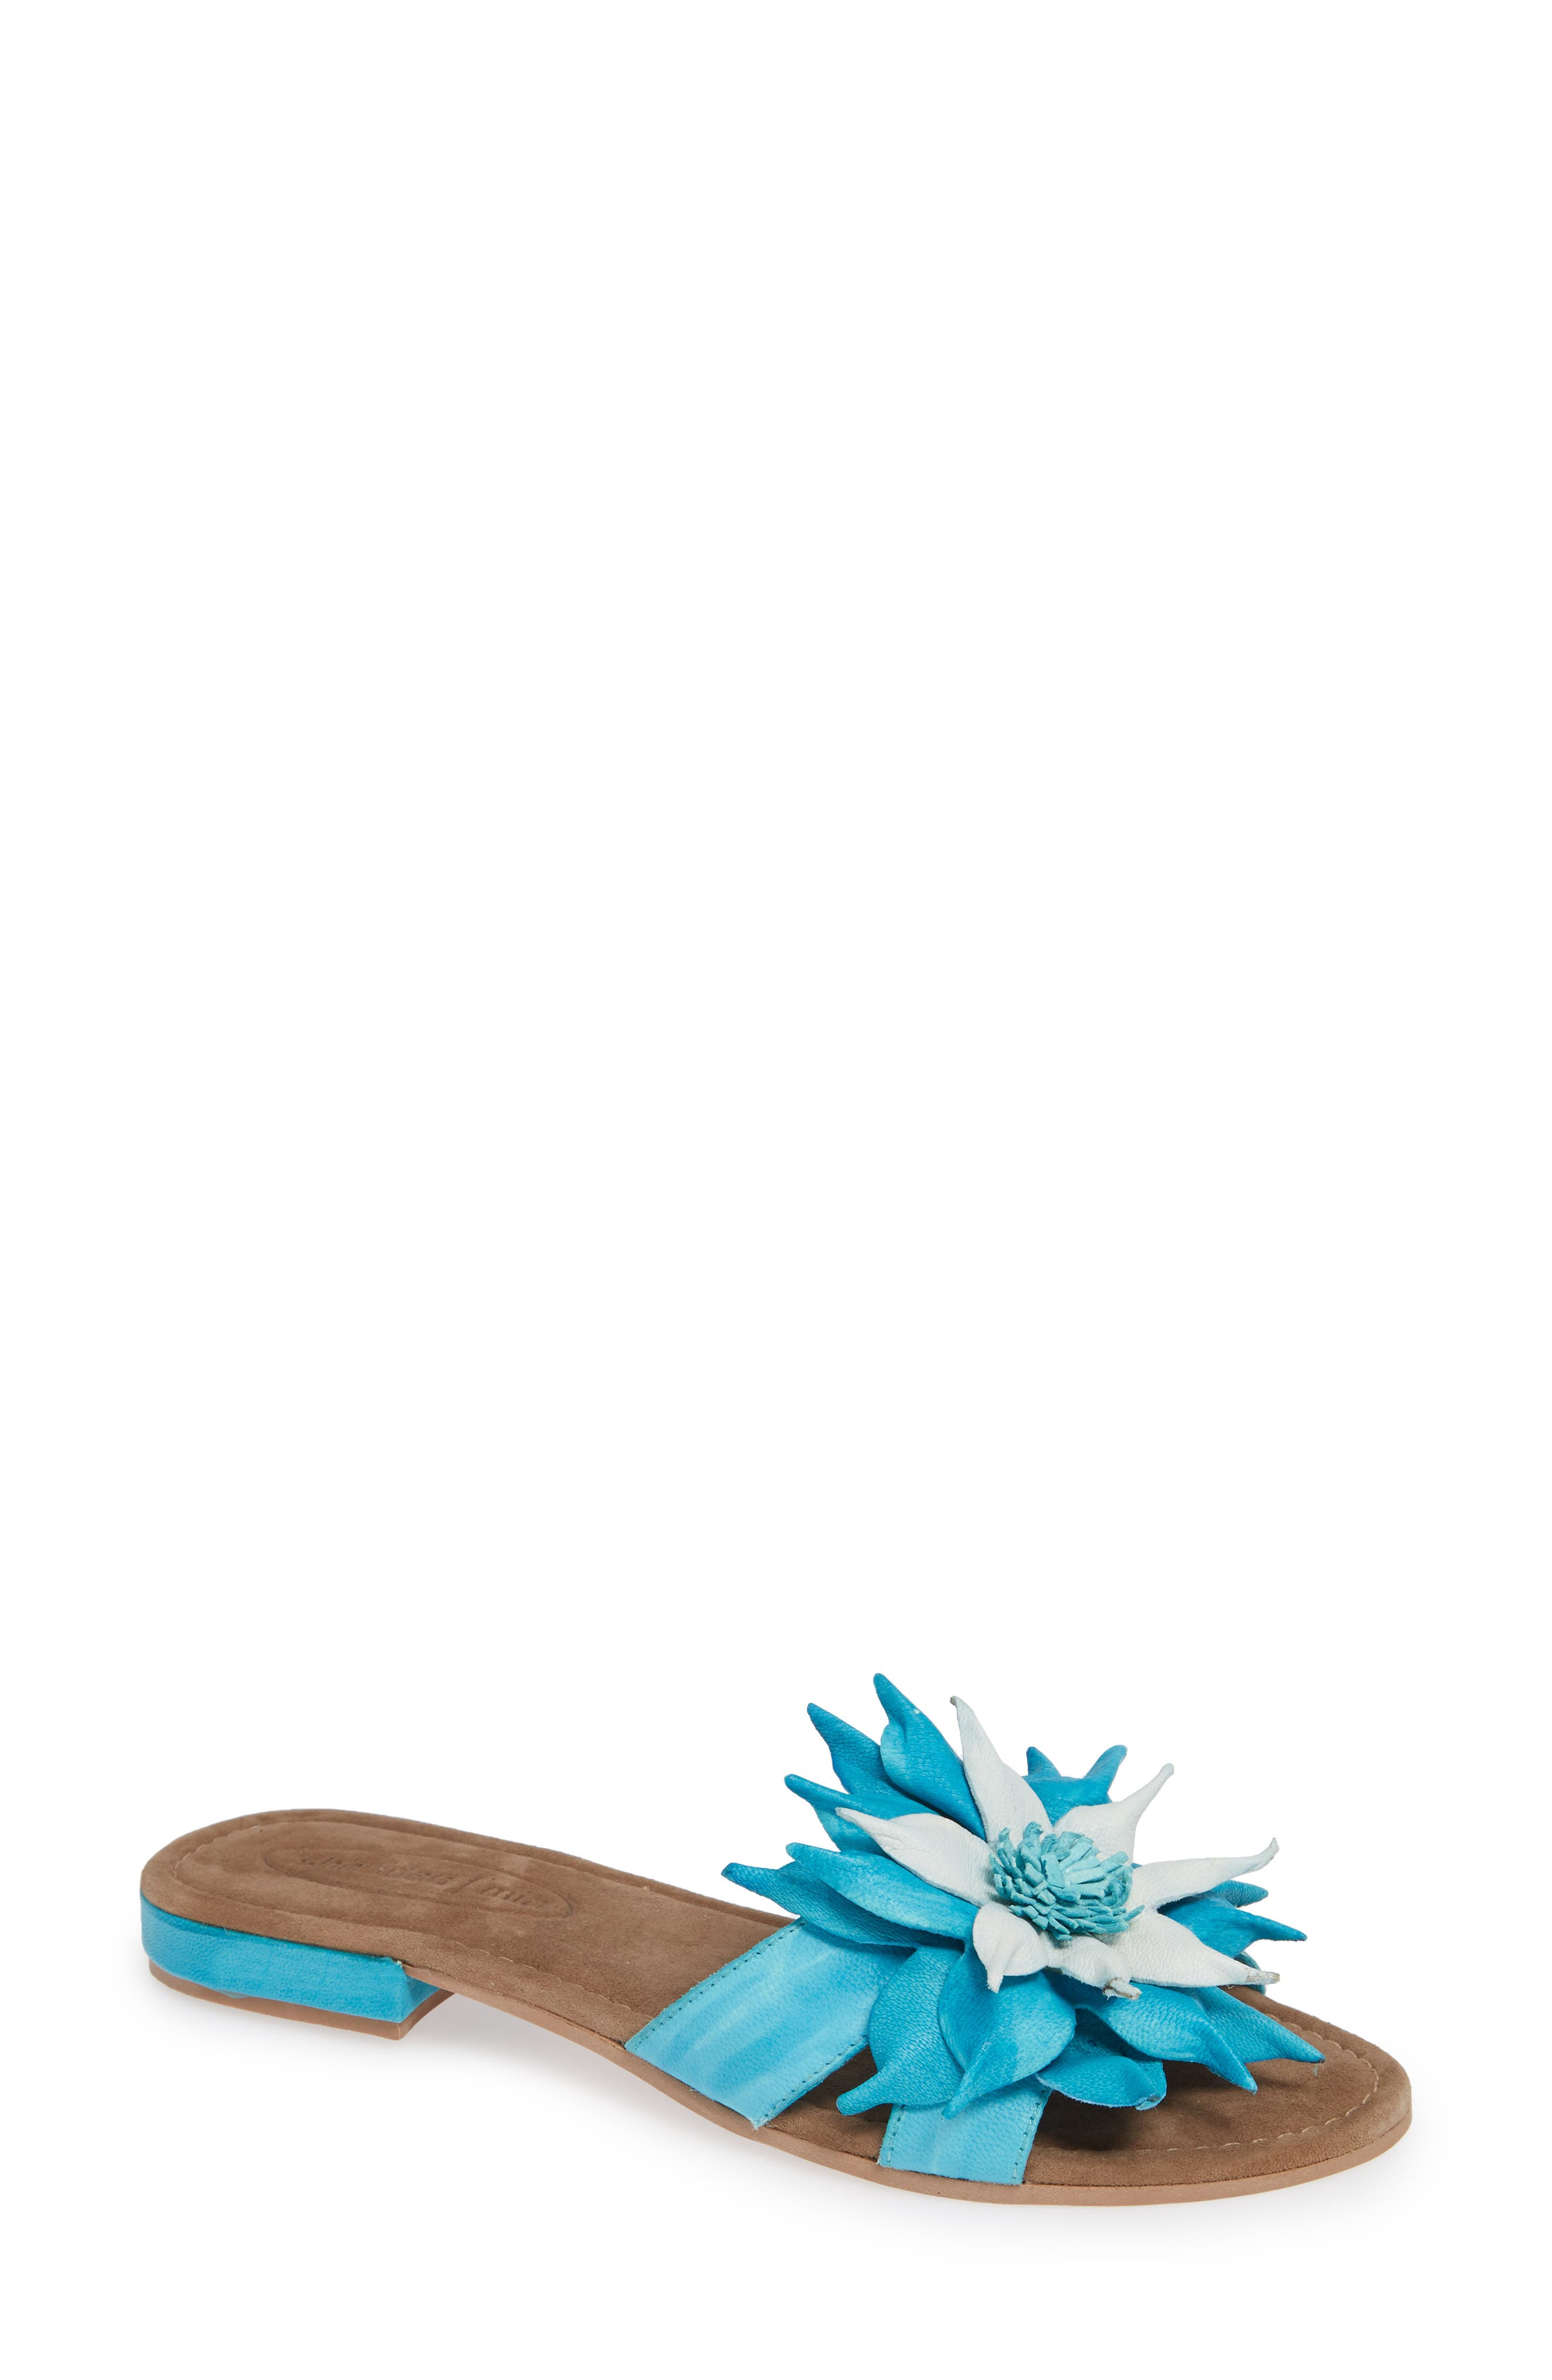 Stella Sandal,                             Main thumbnail 1, color,                             Turquoise Leather